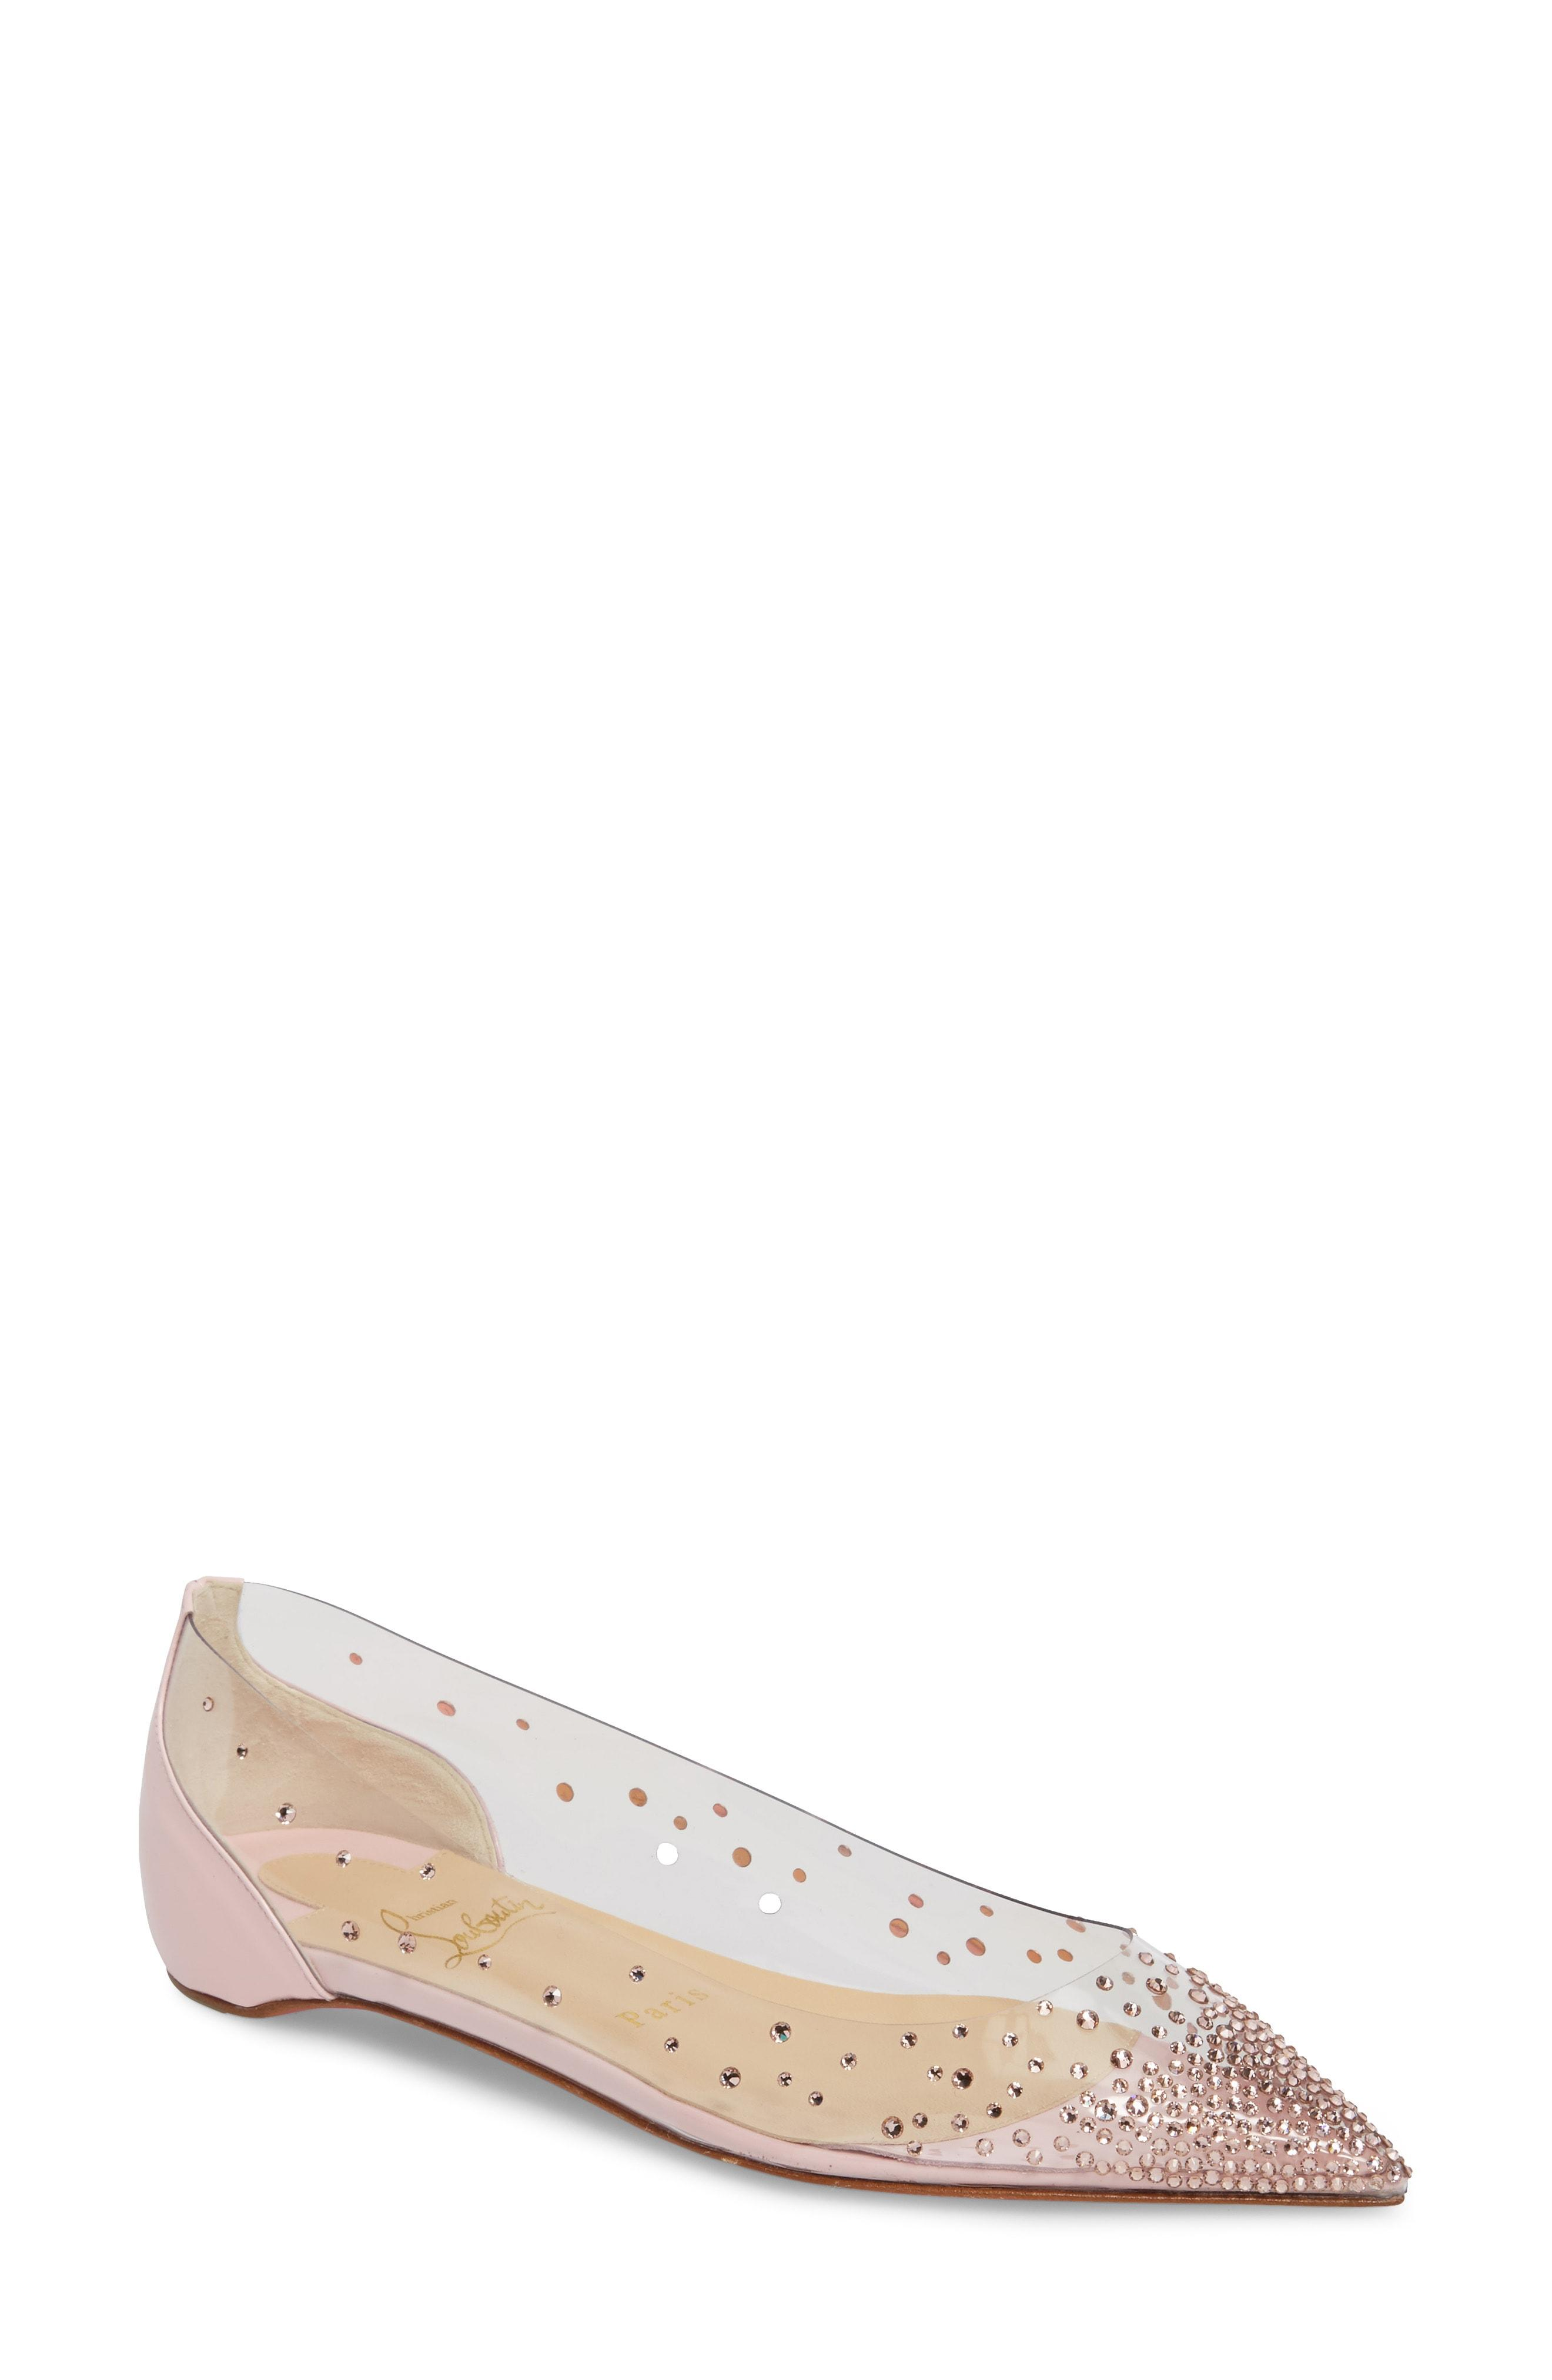 61b3d0c206d Follies Strass&Trade; Mesh & Leather Flats in Version Gold